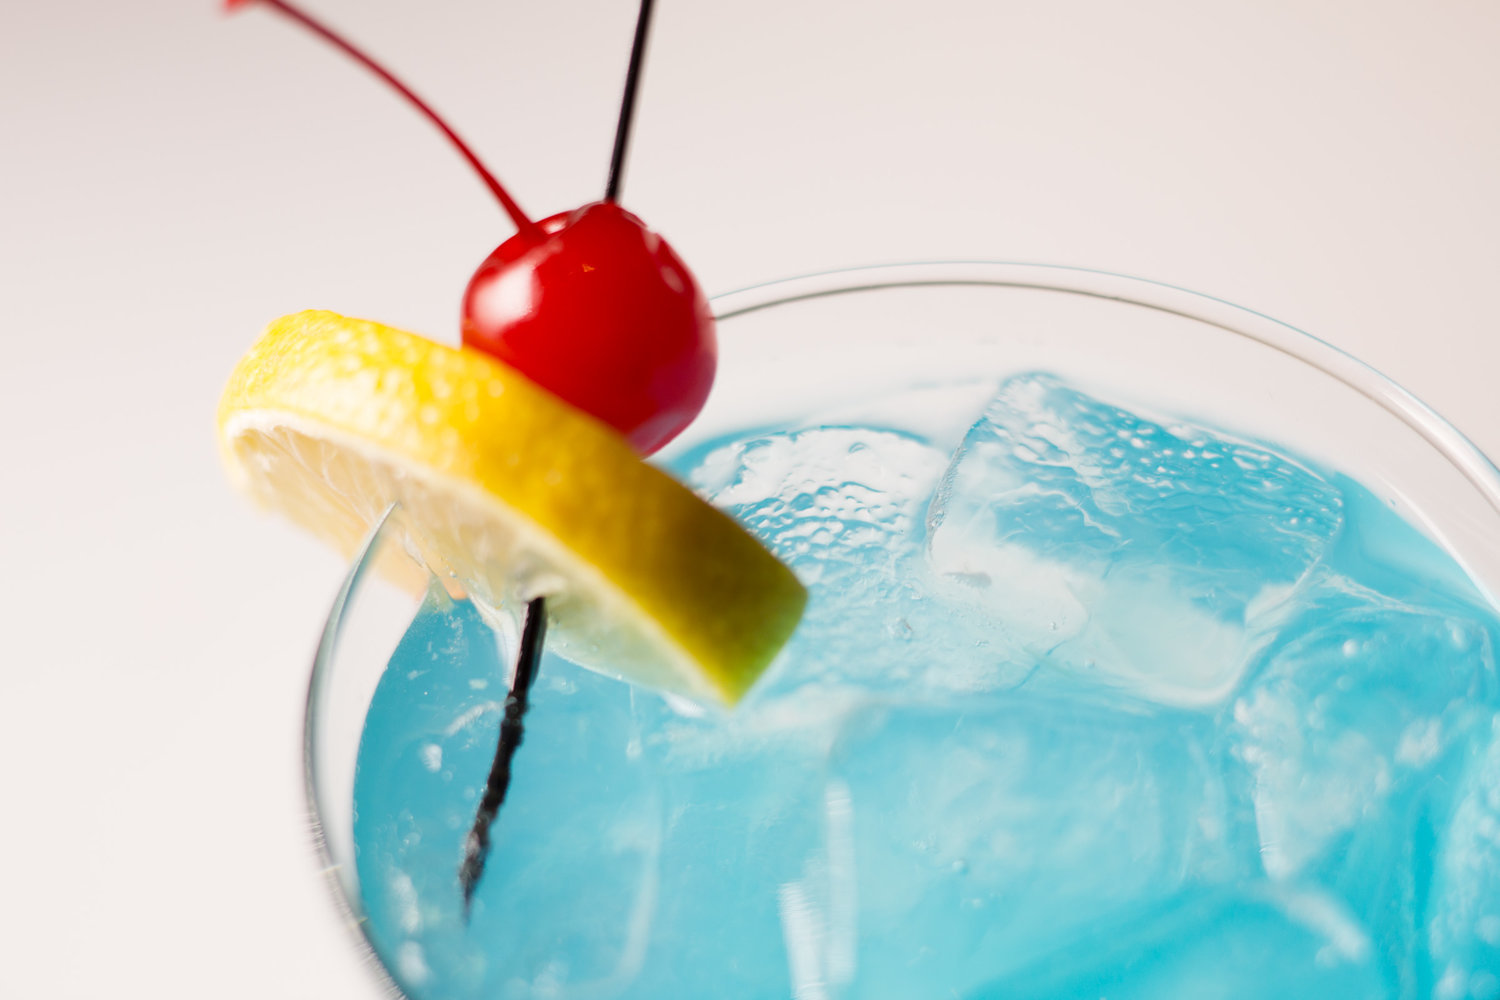 restaurant-chains-Boise-ID-Cocktail.jpg